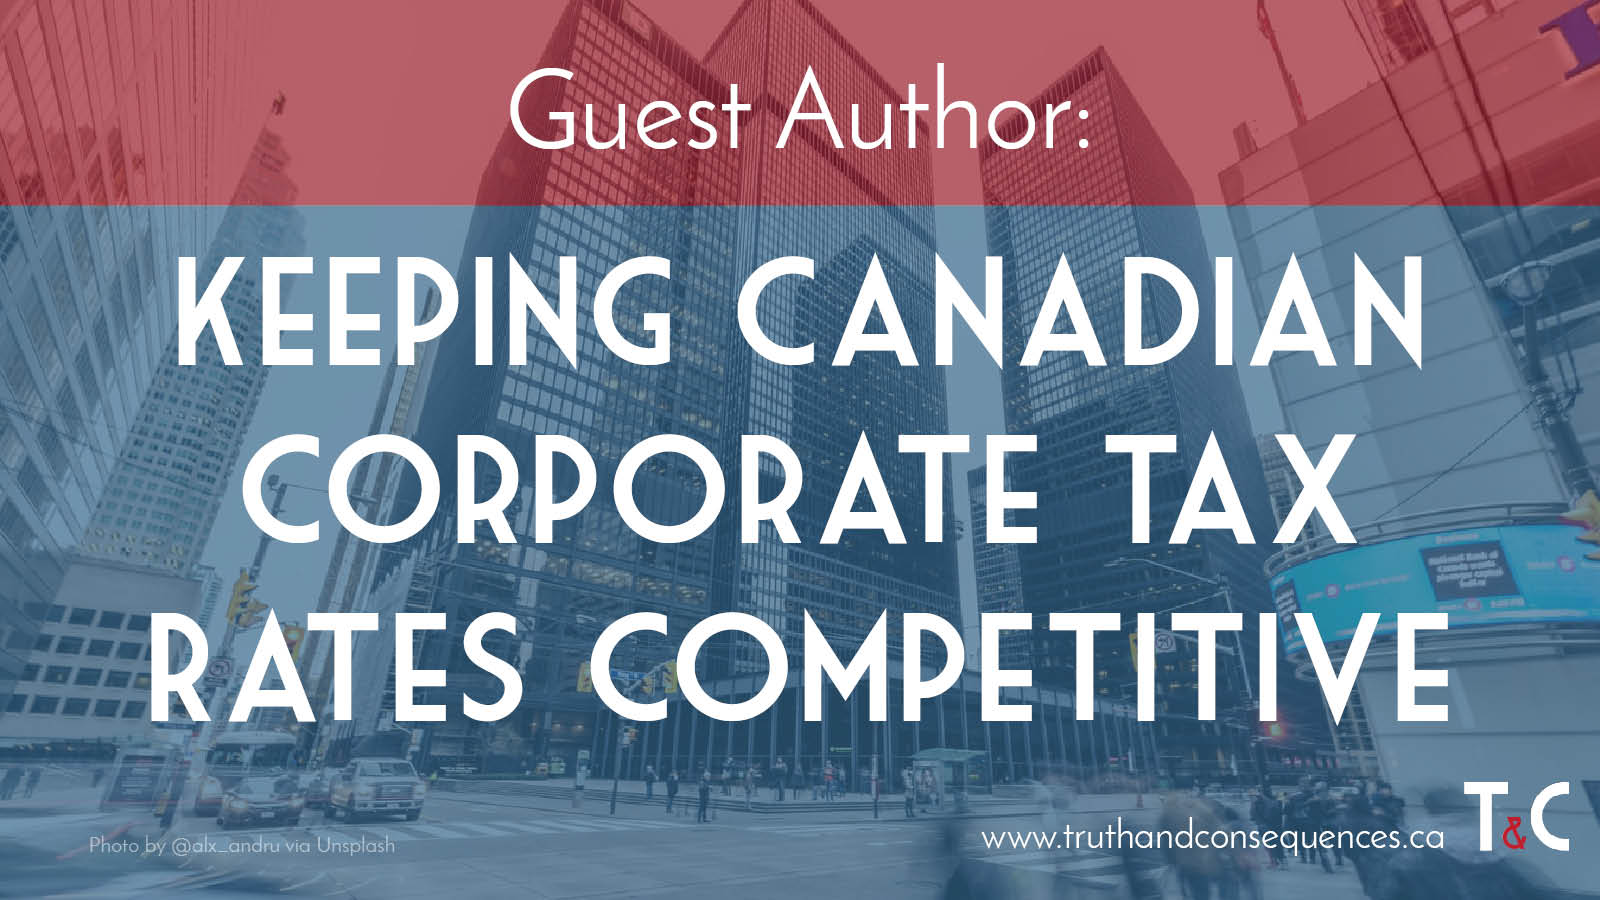 Geoffrey Turner Keeping Canadian Corporate Tax Rates Competitive